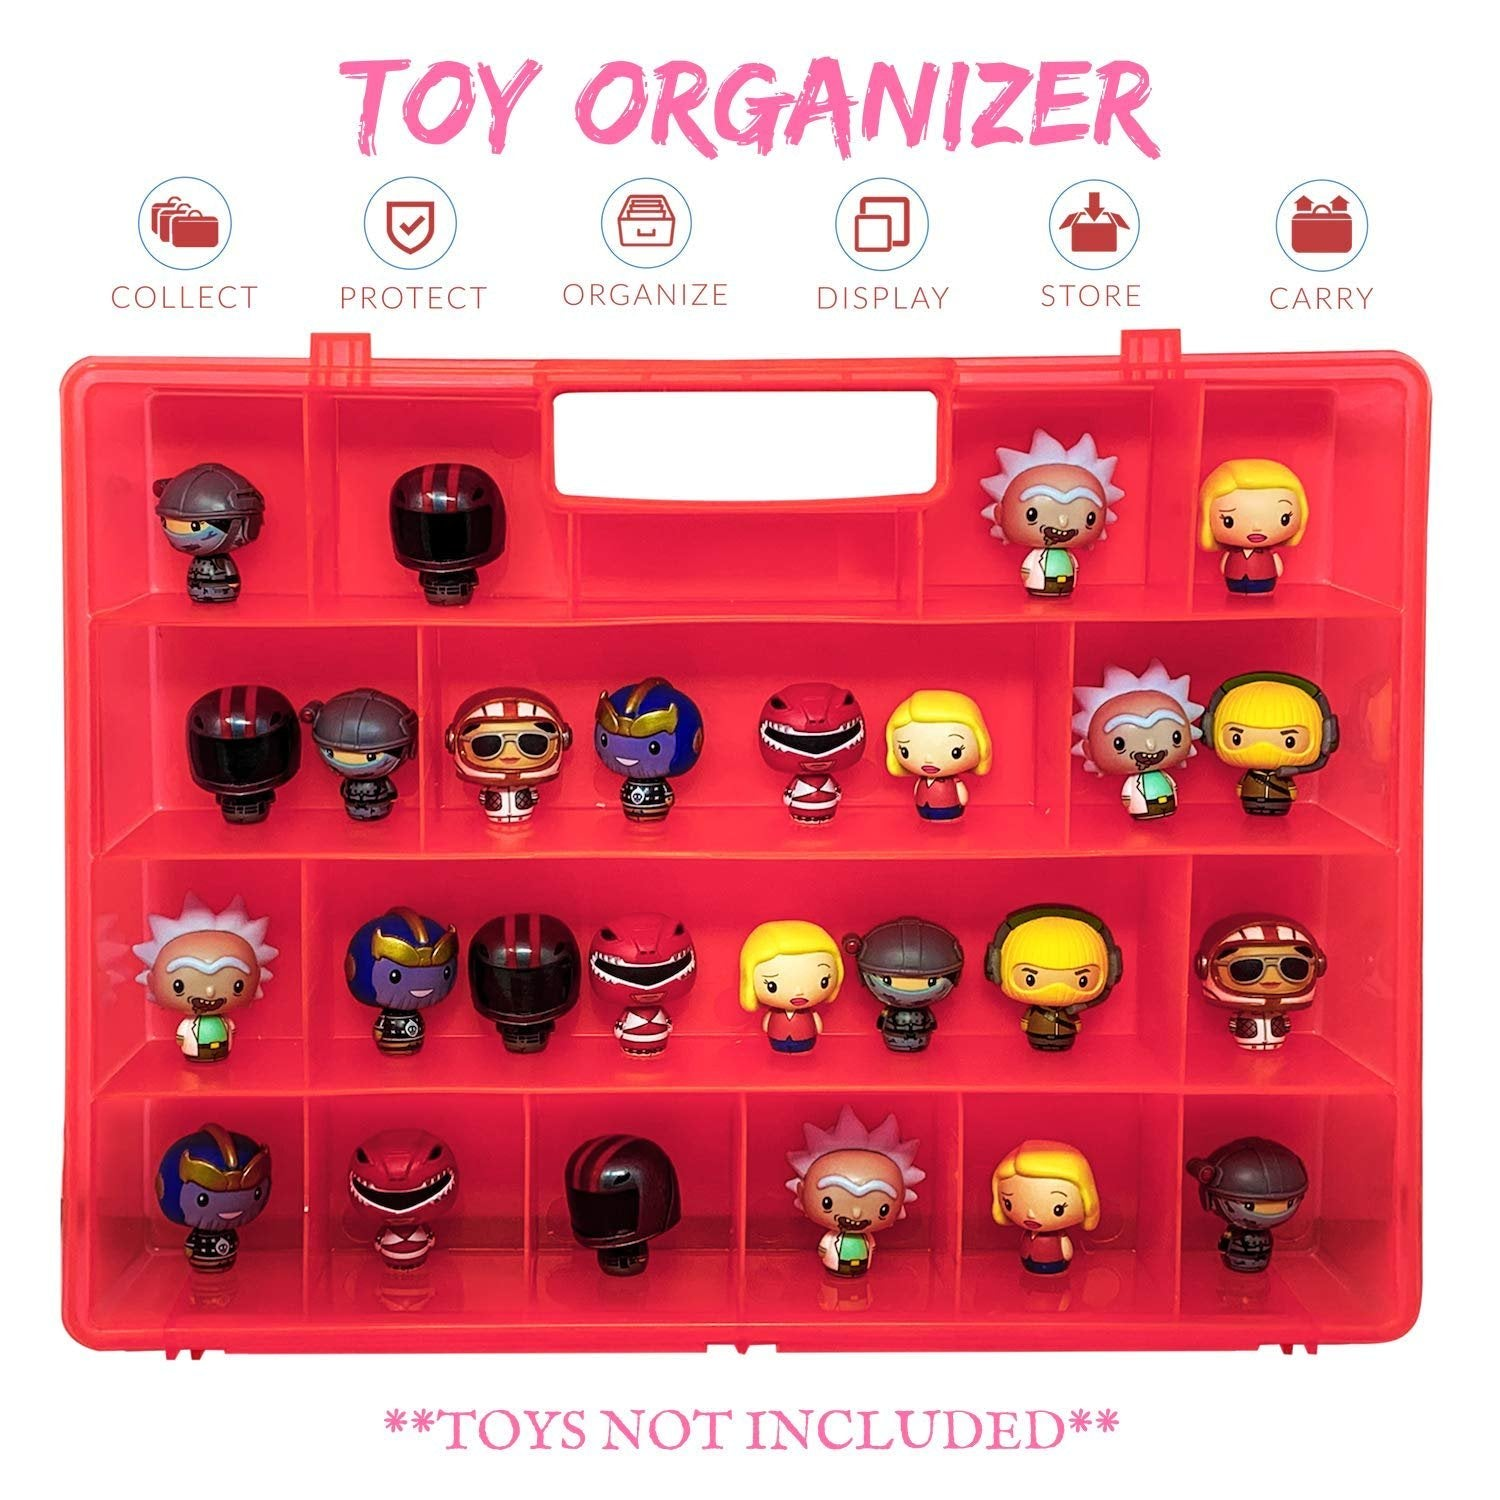 Life Made Better Pink Toy Storage Box Organizer, Sturdy, Protective Toy Storage Organization Case Compatible with Funko Pop Pint Size Mini Figures, Not Made by Funko